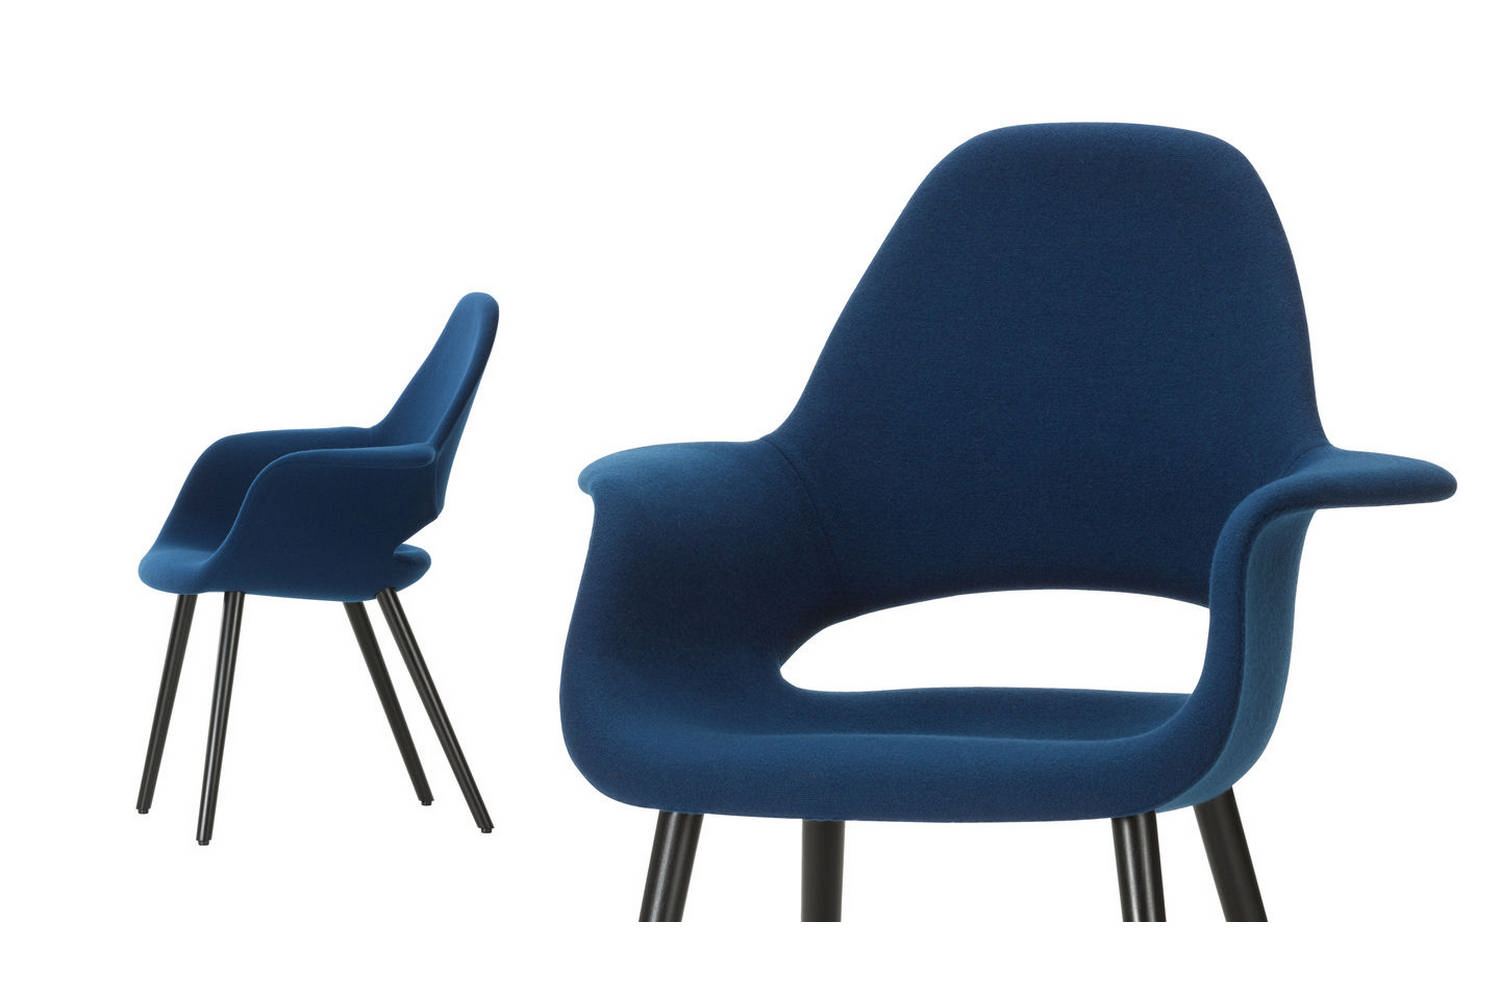 Vitra Chalres Eames : Organic conference chair with arms by charles eames eero